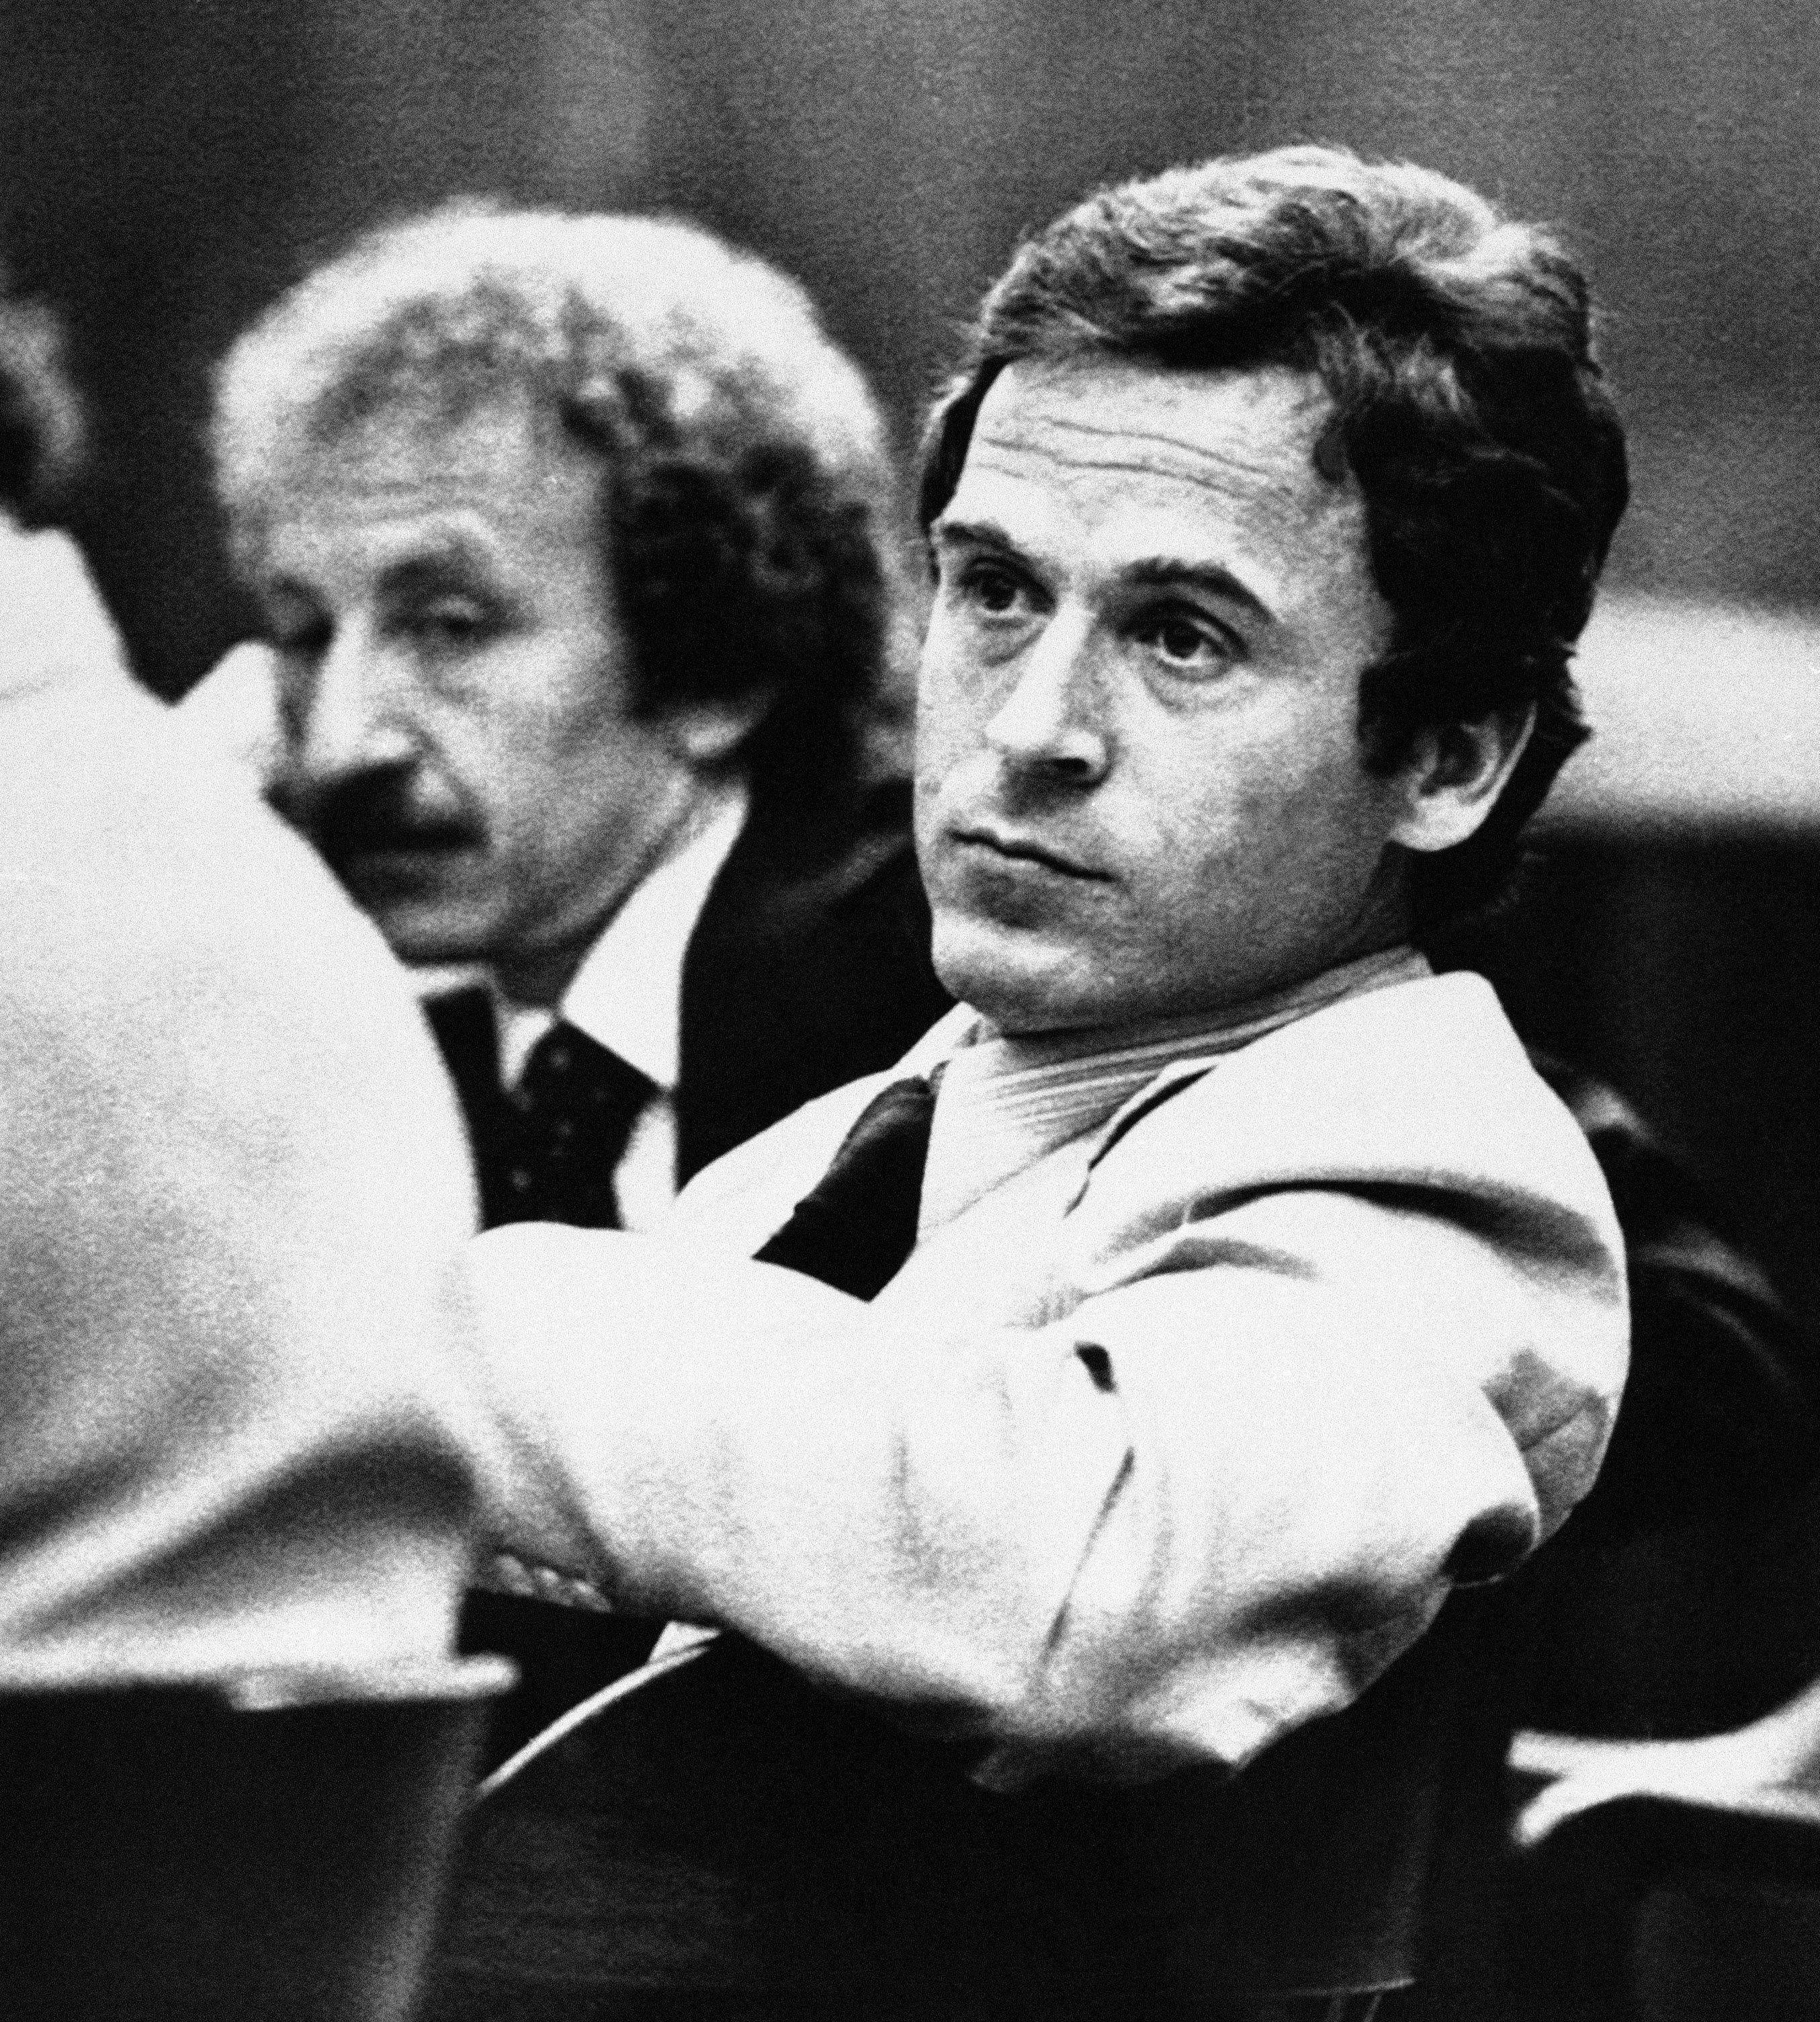 FILE - In this April 26, 1979, file photo, Ted Bundy leans back in his chair in the courtroom before his trial in Tallahassee, Fla. One of the most notorious serial killers in American history, Bundy is believed to have killed at least 30 young women across the United States in the 1970s. Bundy was one of the hundreds of fugitives who have appeared on the FBI's Ten Most Wanted Fugitives list. (AP Photo/Mark Foley, File)